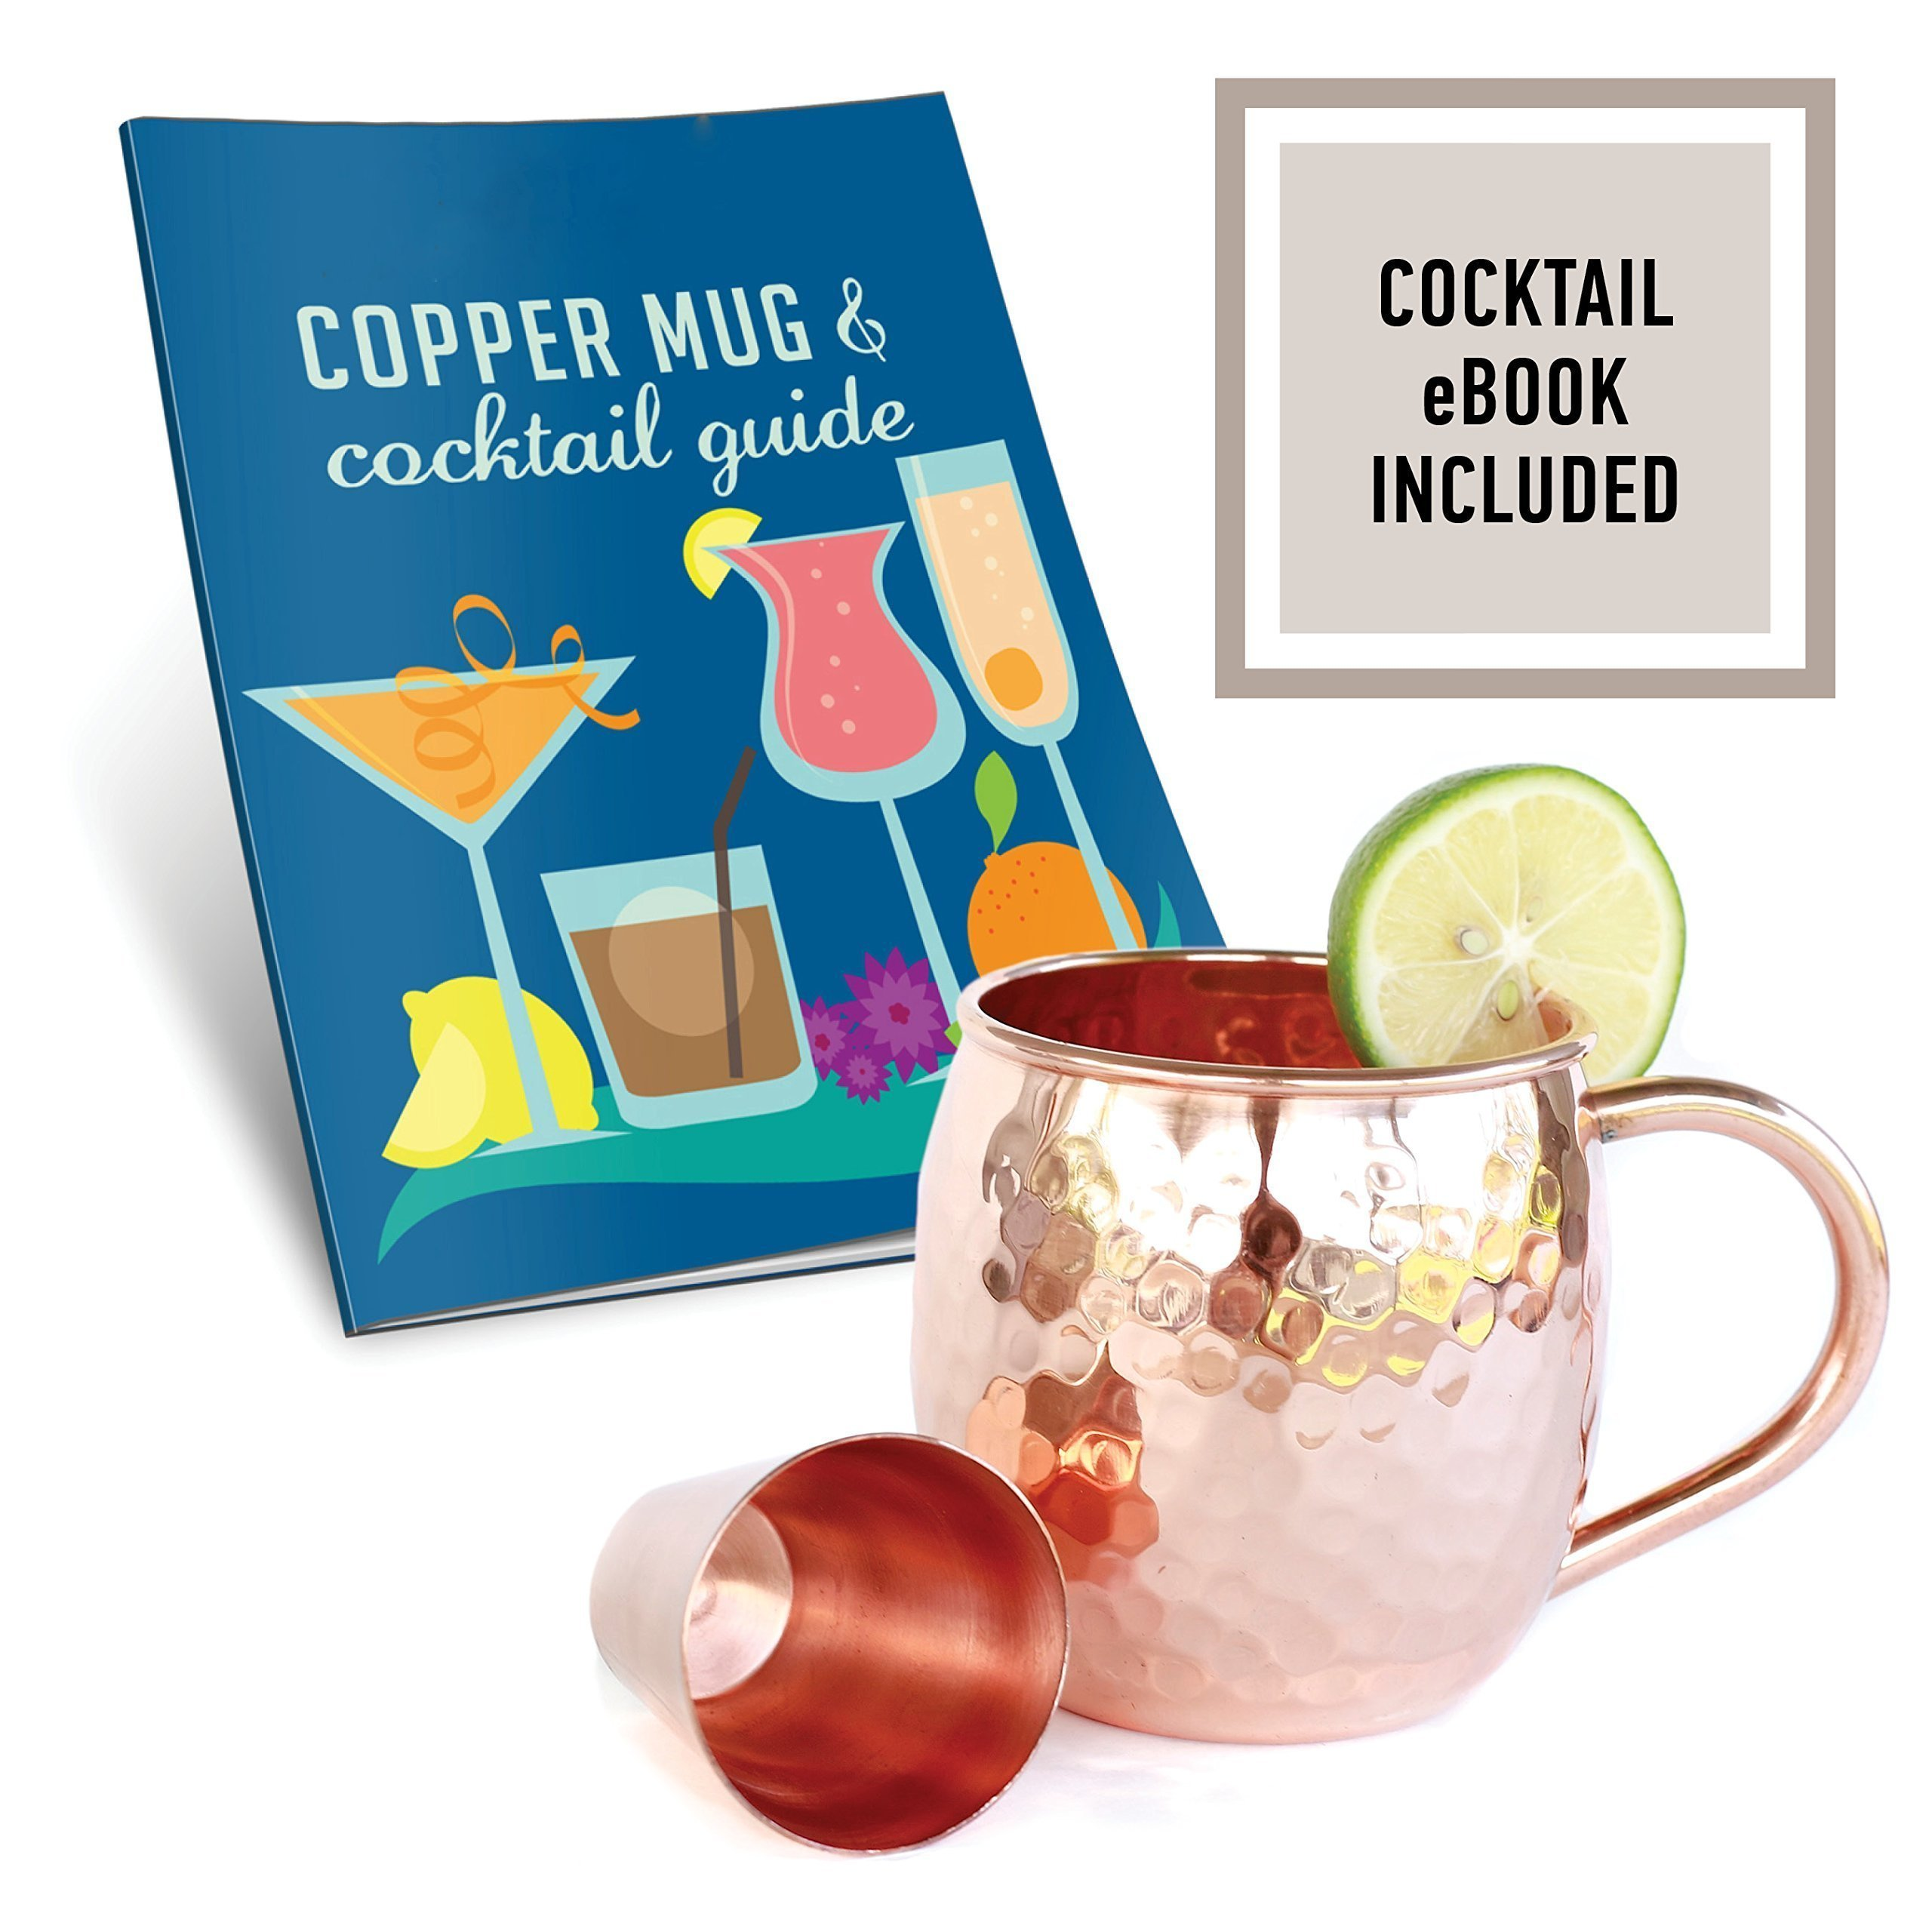 Set of 2 Moscow Mule Copper Mugs with Shot Glass - Two 16 Oz Copper Moscow Mule Mugs - Solid Copper Hammered Mug - Copper Cups for Moscow Mules by Willow & Everett (Image #5)